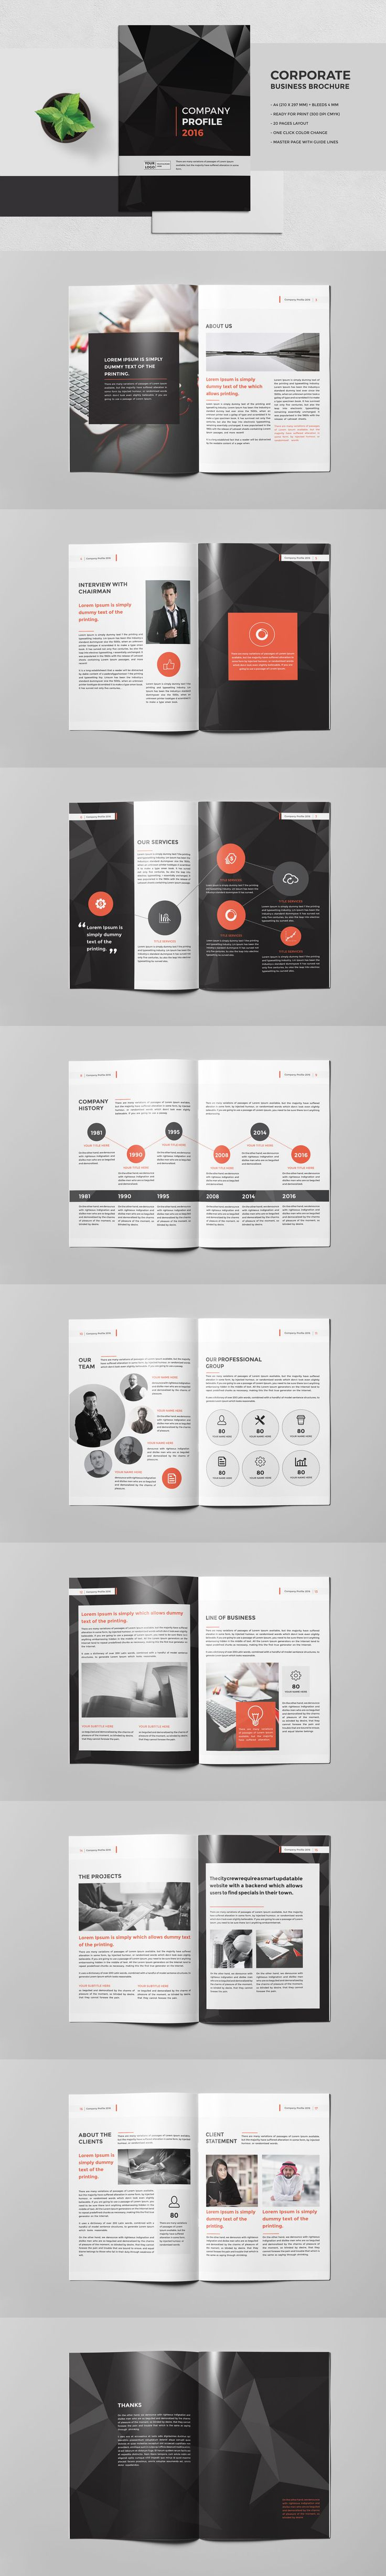 The Company Brochure Template InDesign INDD - 20 Pages